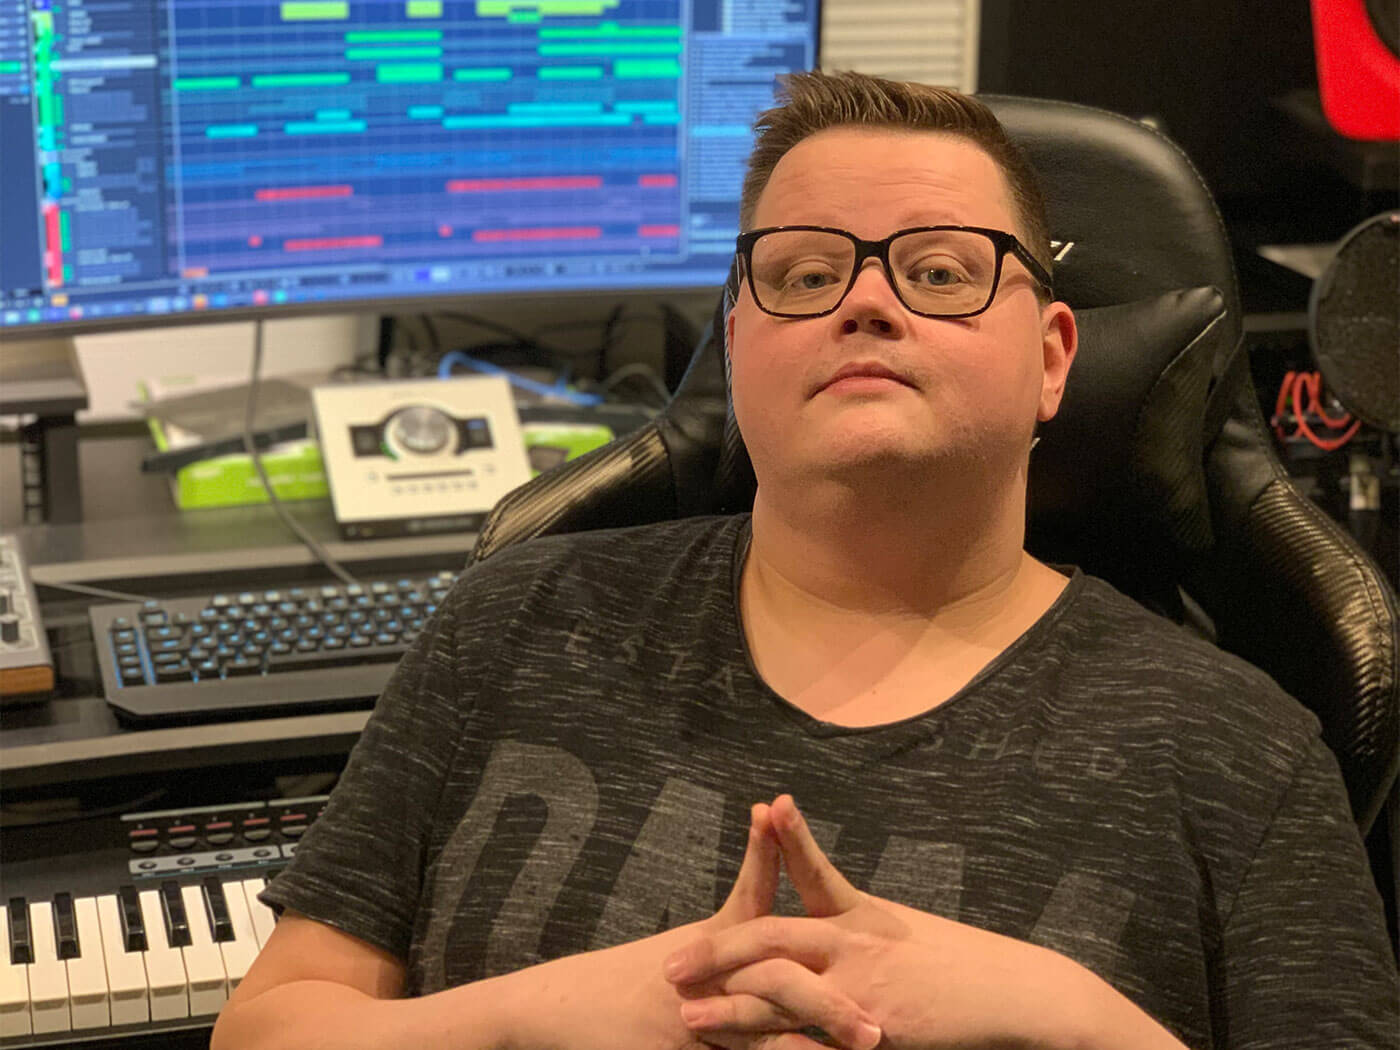 Ørjan Nilsen on the birth of his career and what tracks inspired him   MusicTech